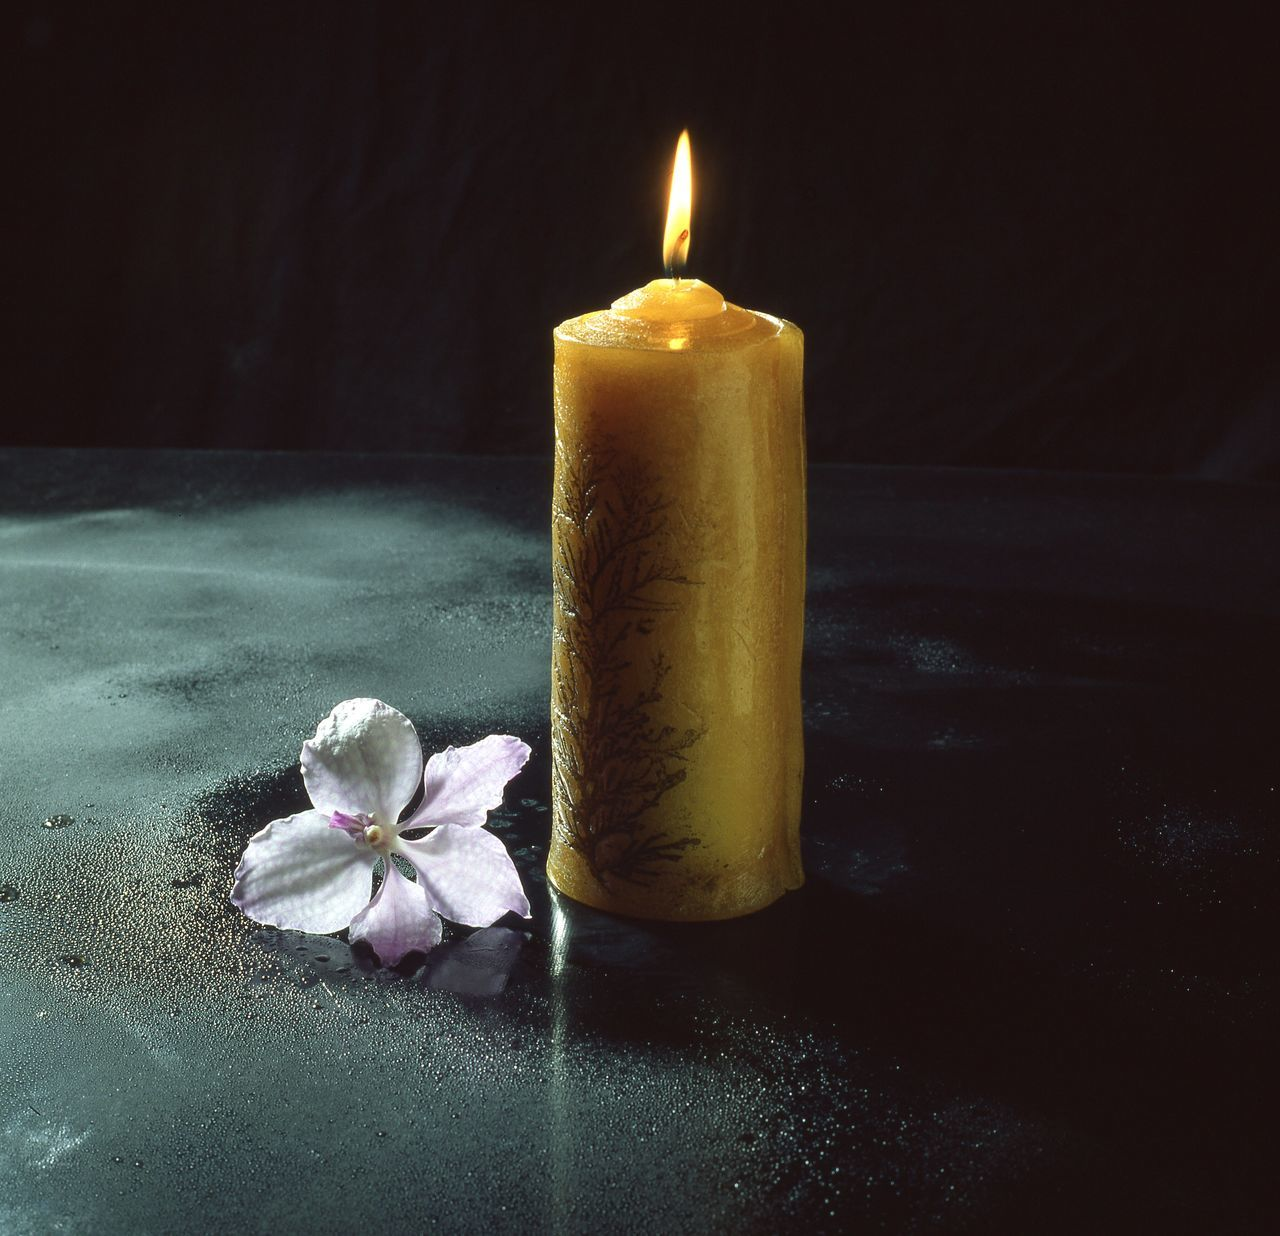 candle, flame, flower, burning, close-up, table, no people, indoors, petal, freshness, heat - temperature, flower head, fragility, black background, nature, day